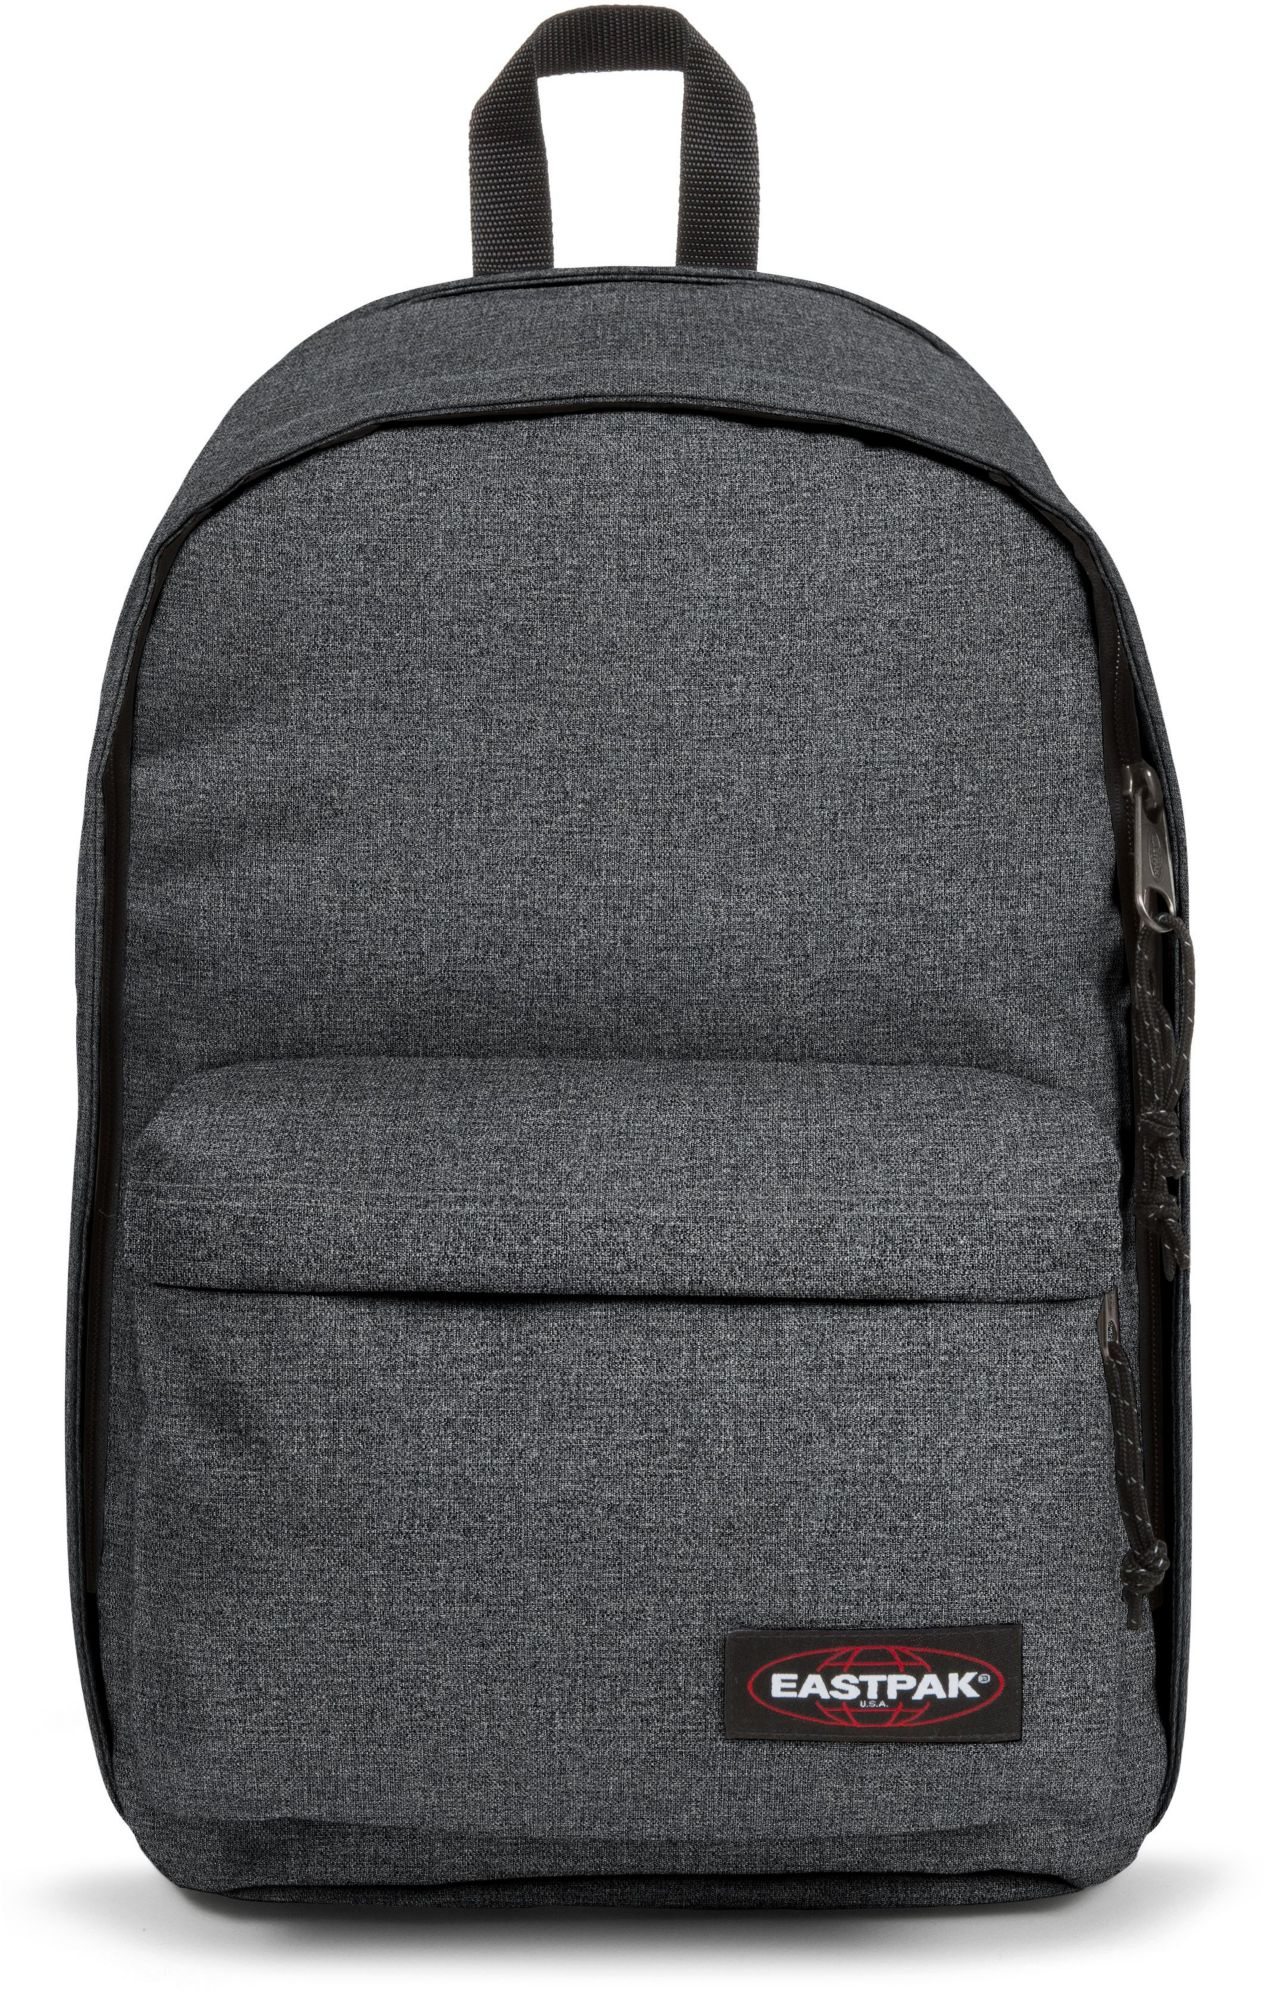 EASTPAK Eastpak Rucksack, »BACK TO WORK black denim«